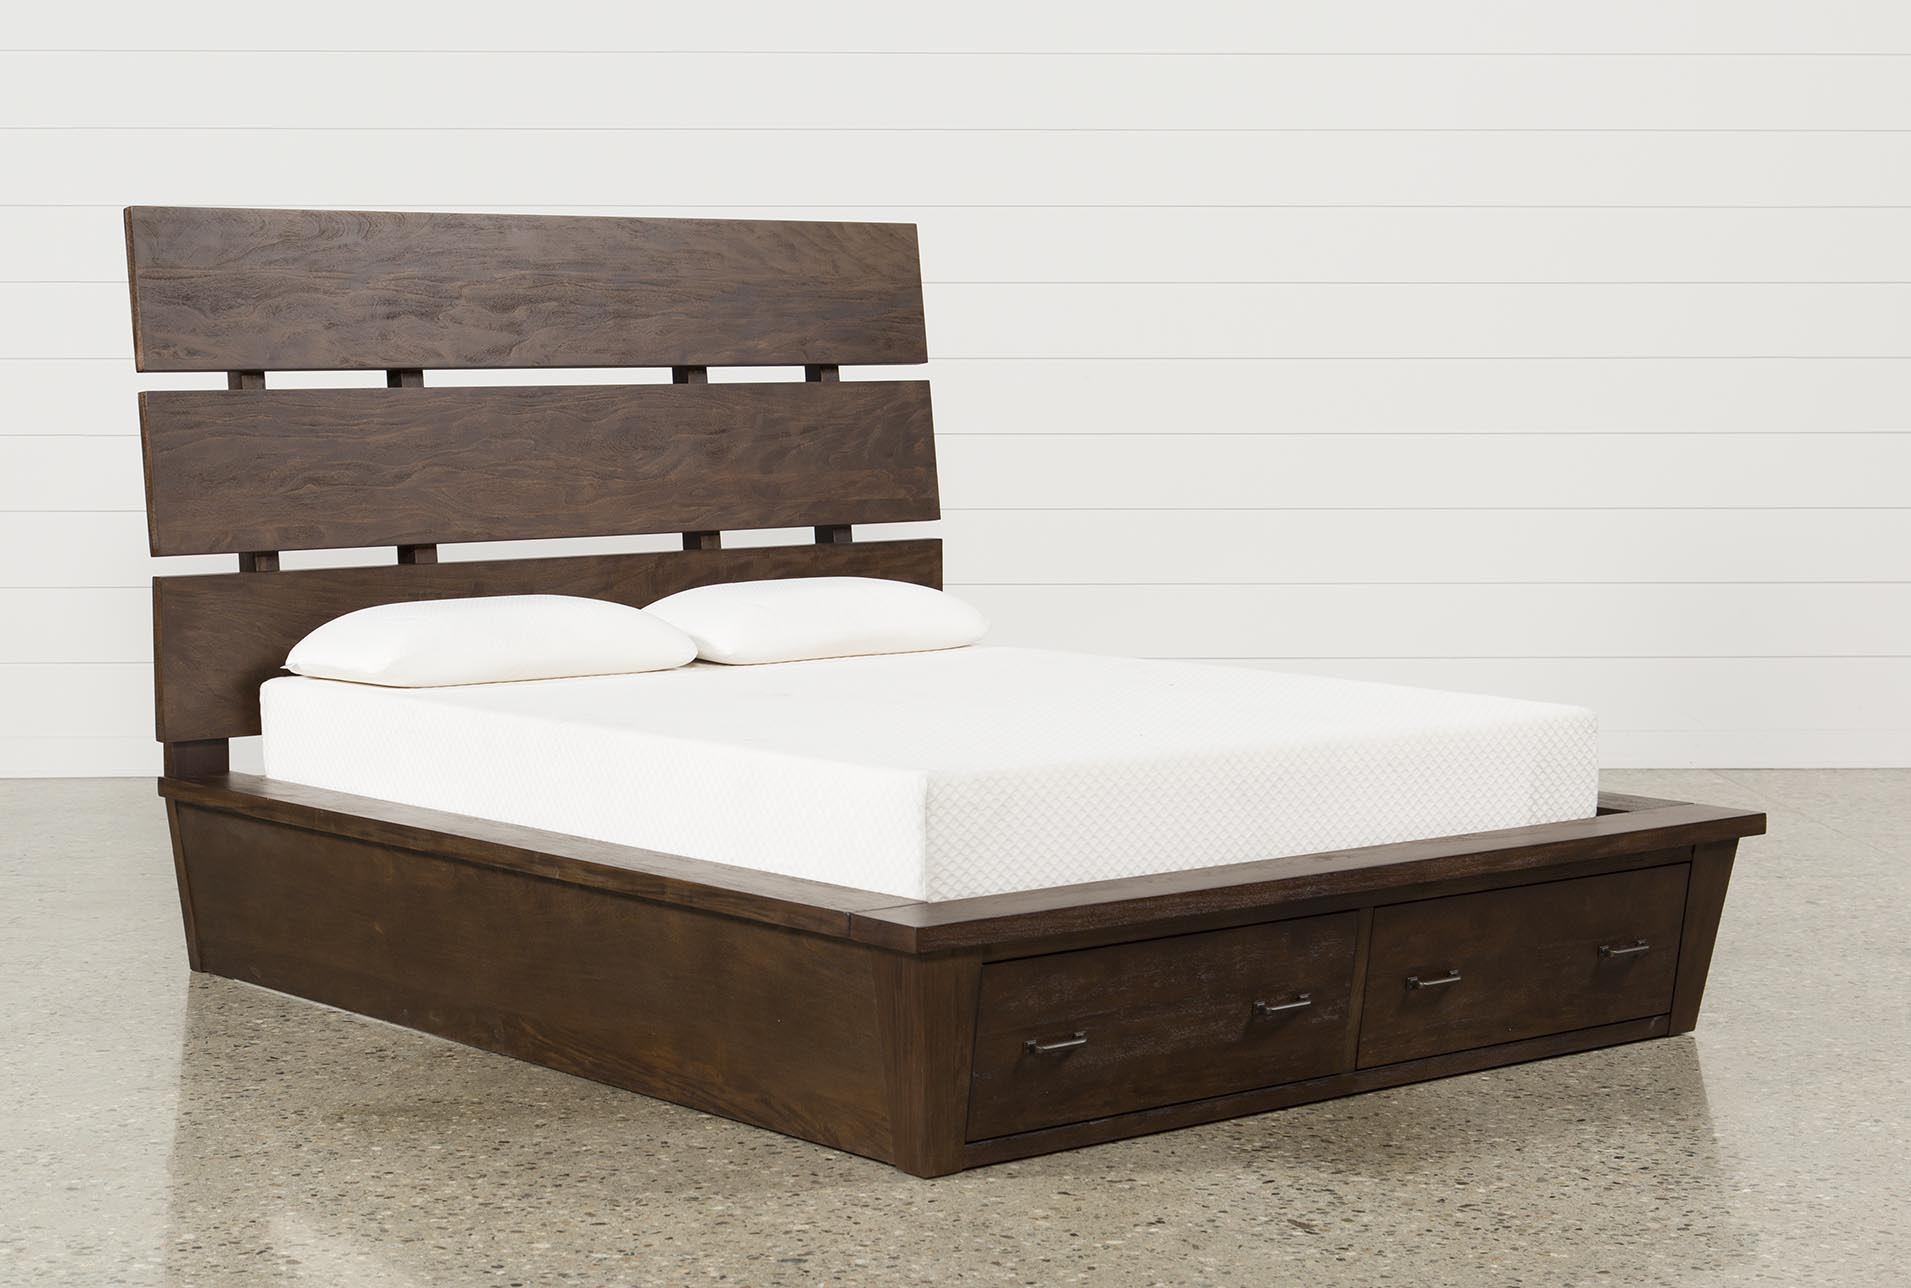 Livingston Queen Storage Bed (Qty: 1) has been successfully added to your  Cart.